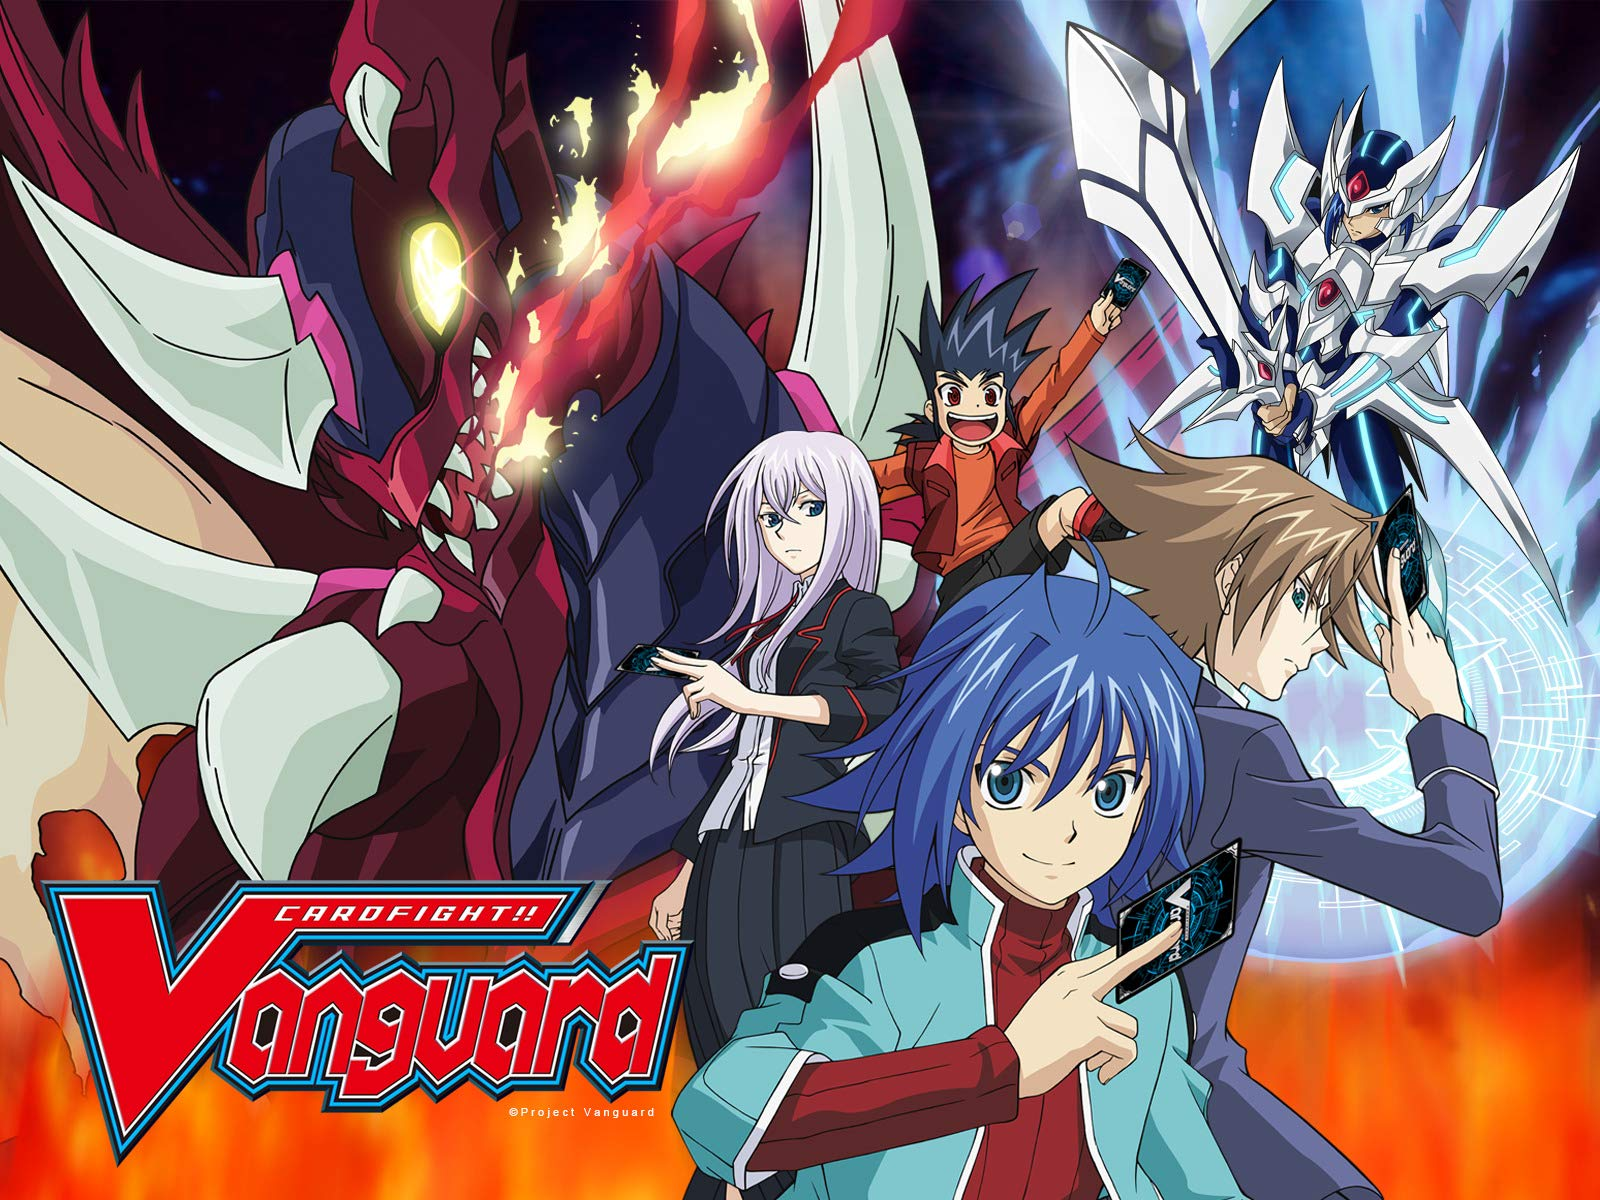 CARDFIGHT!! Vanguard on Amazon Prime Video UK